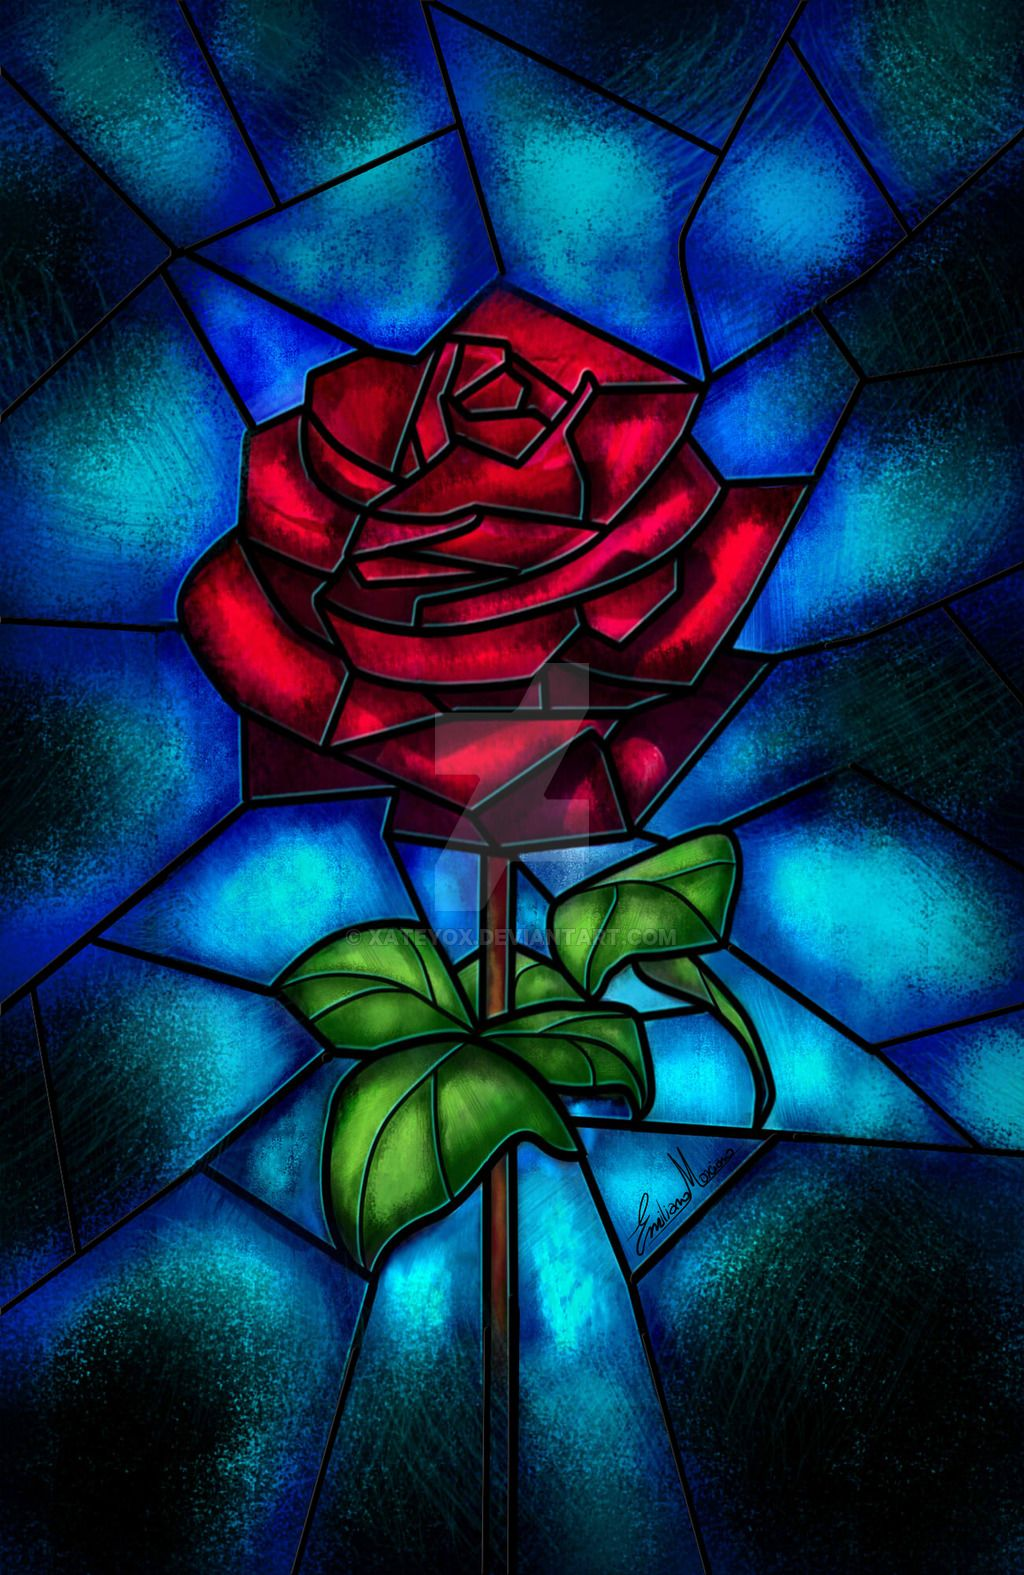 Eternal Rose Disney Stained Glass Disney Beauty And The Beast Beauty And The Beast